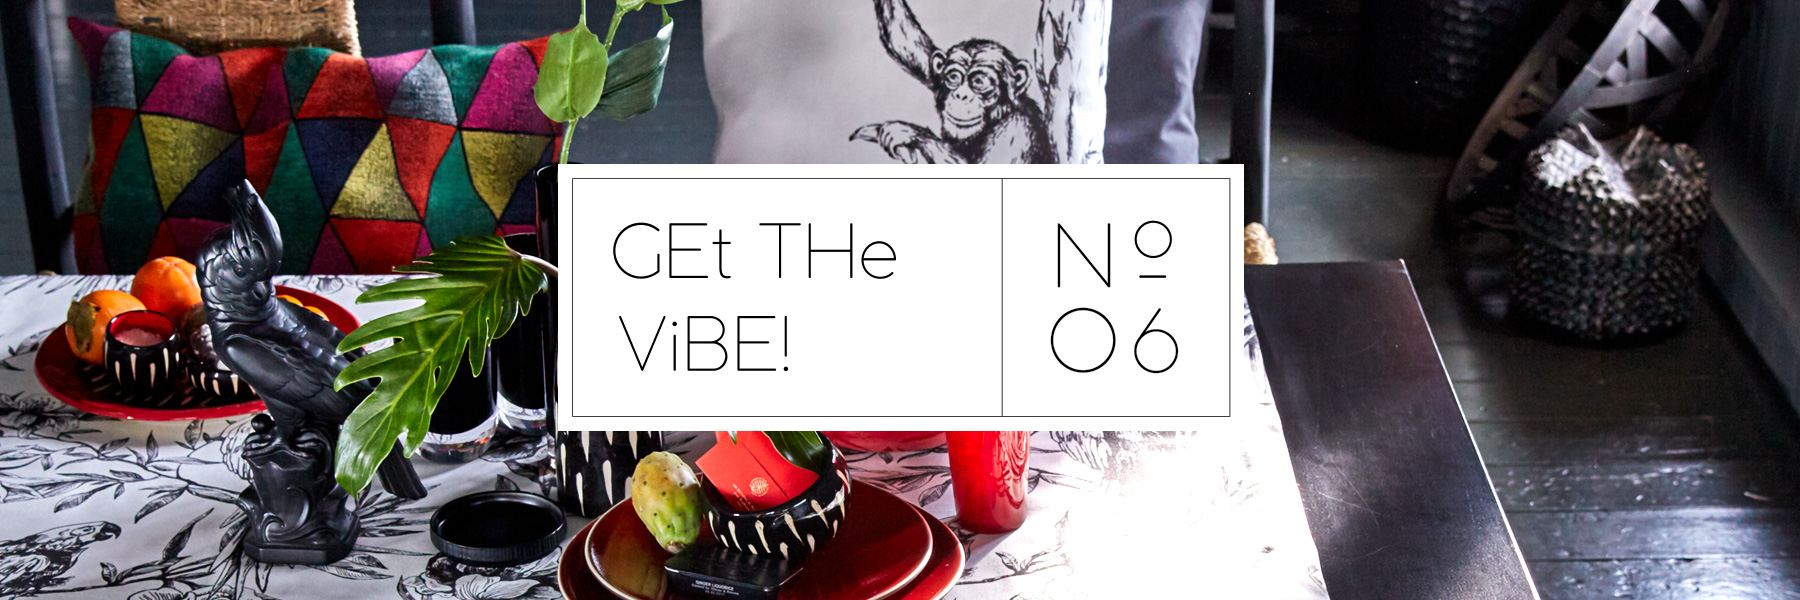 Get the Vibe!